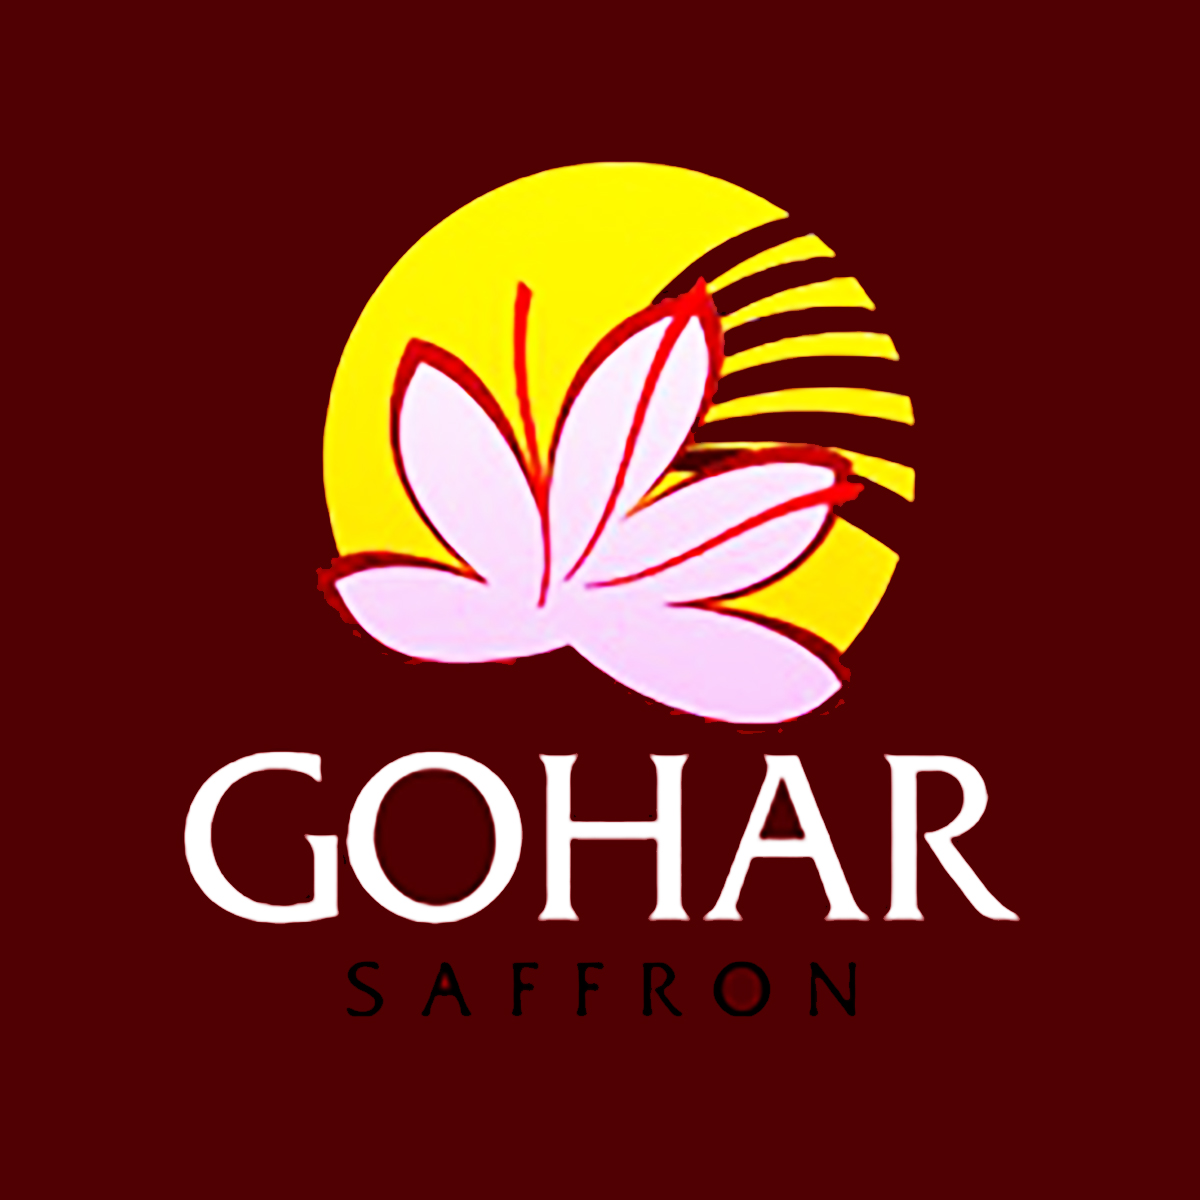 Gohar saffron